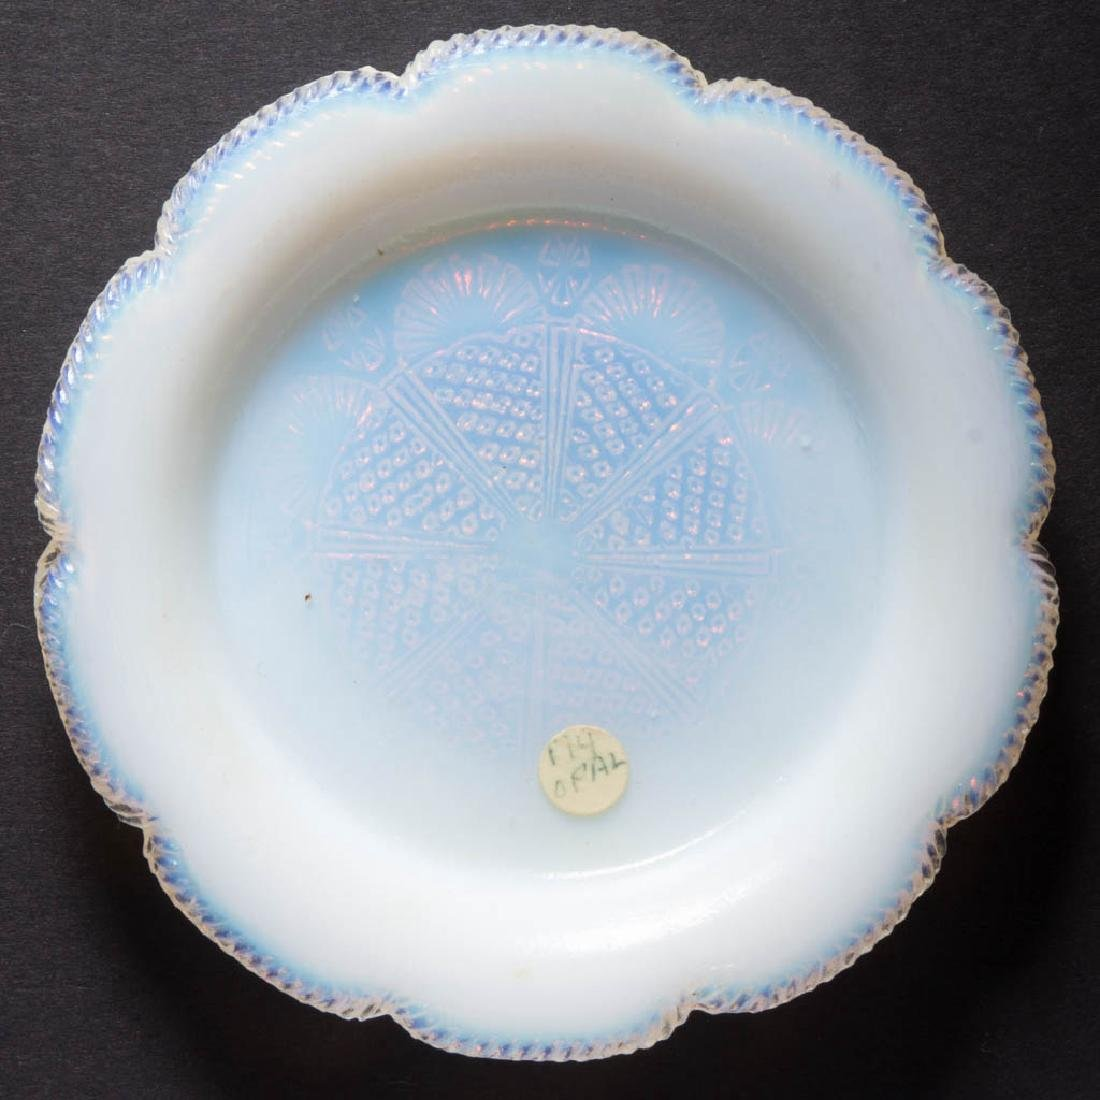 LEE/ROSE NO. 174 CUP PLATE